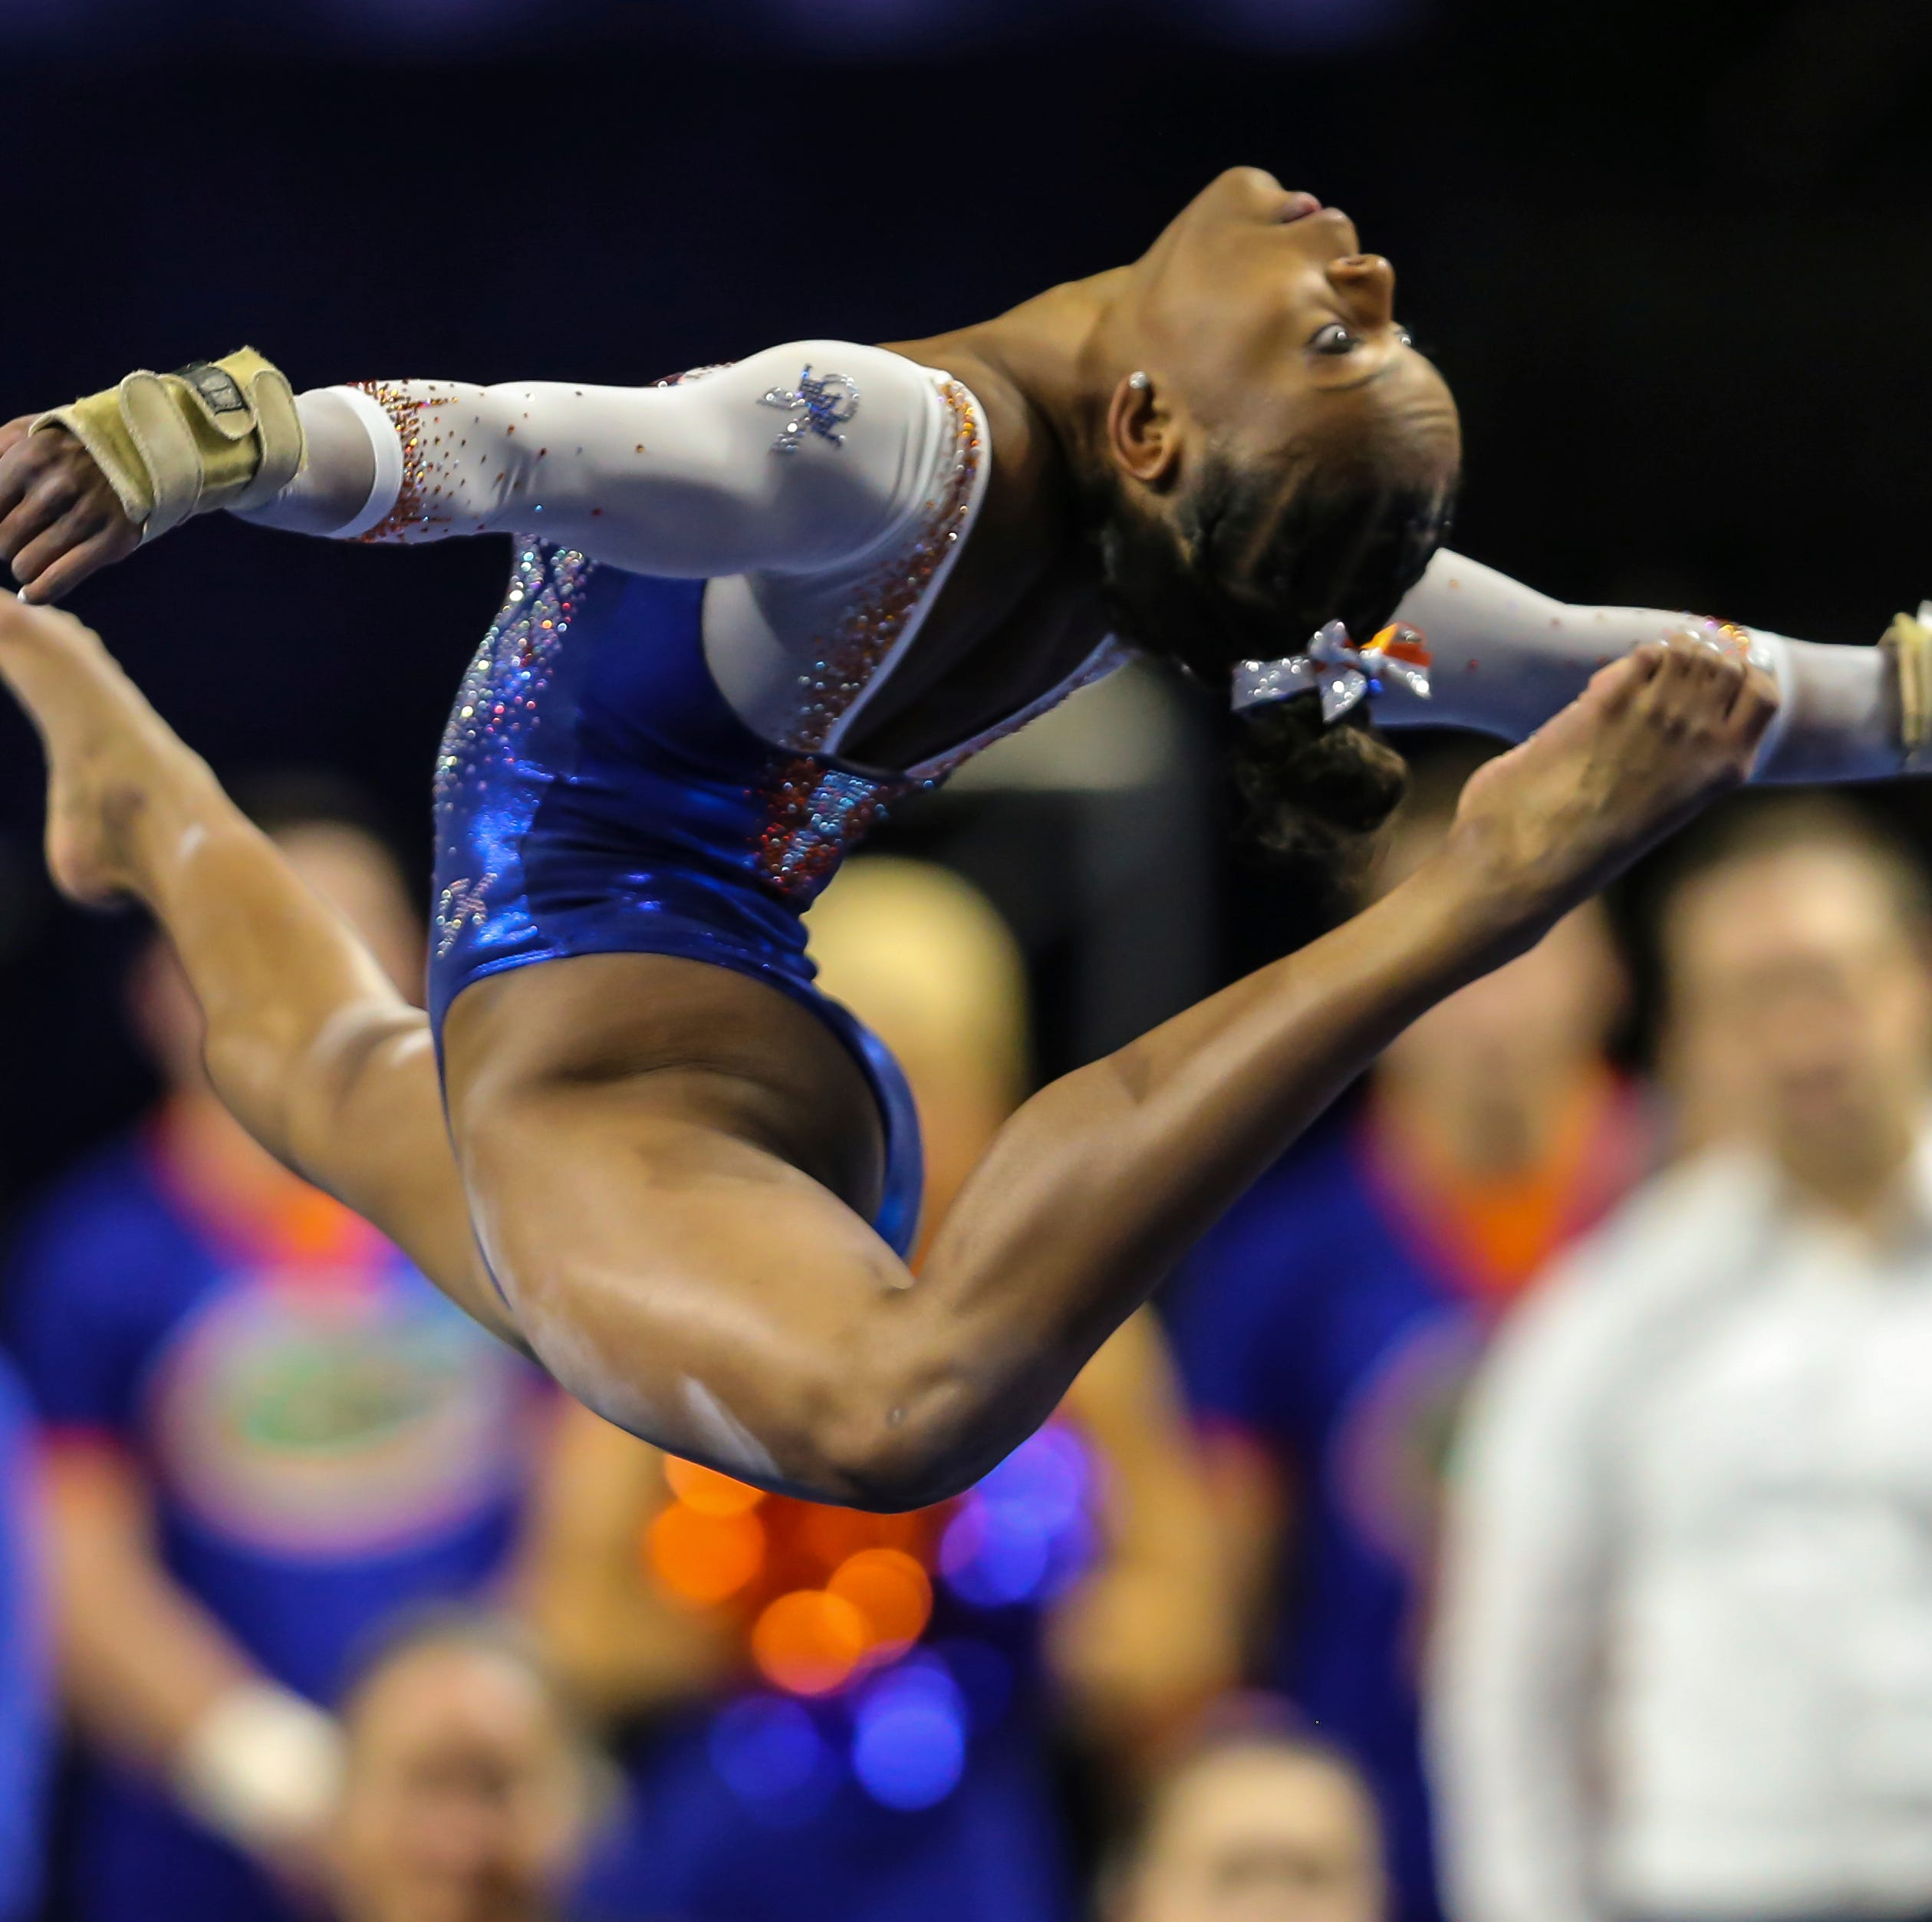 York gymnast Trinity Thomas reaches podium at NCAA Gymnastics Championships